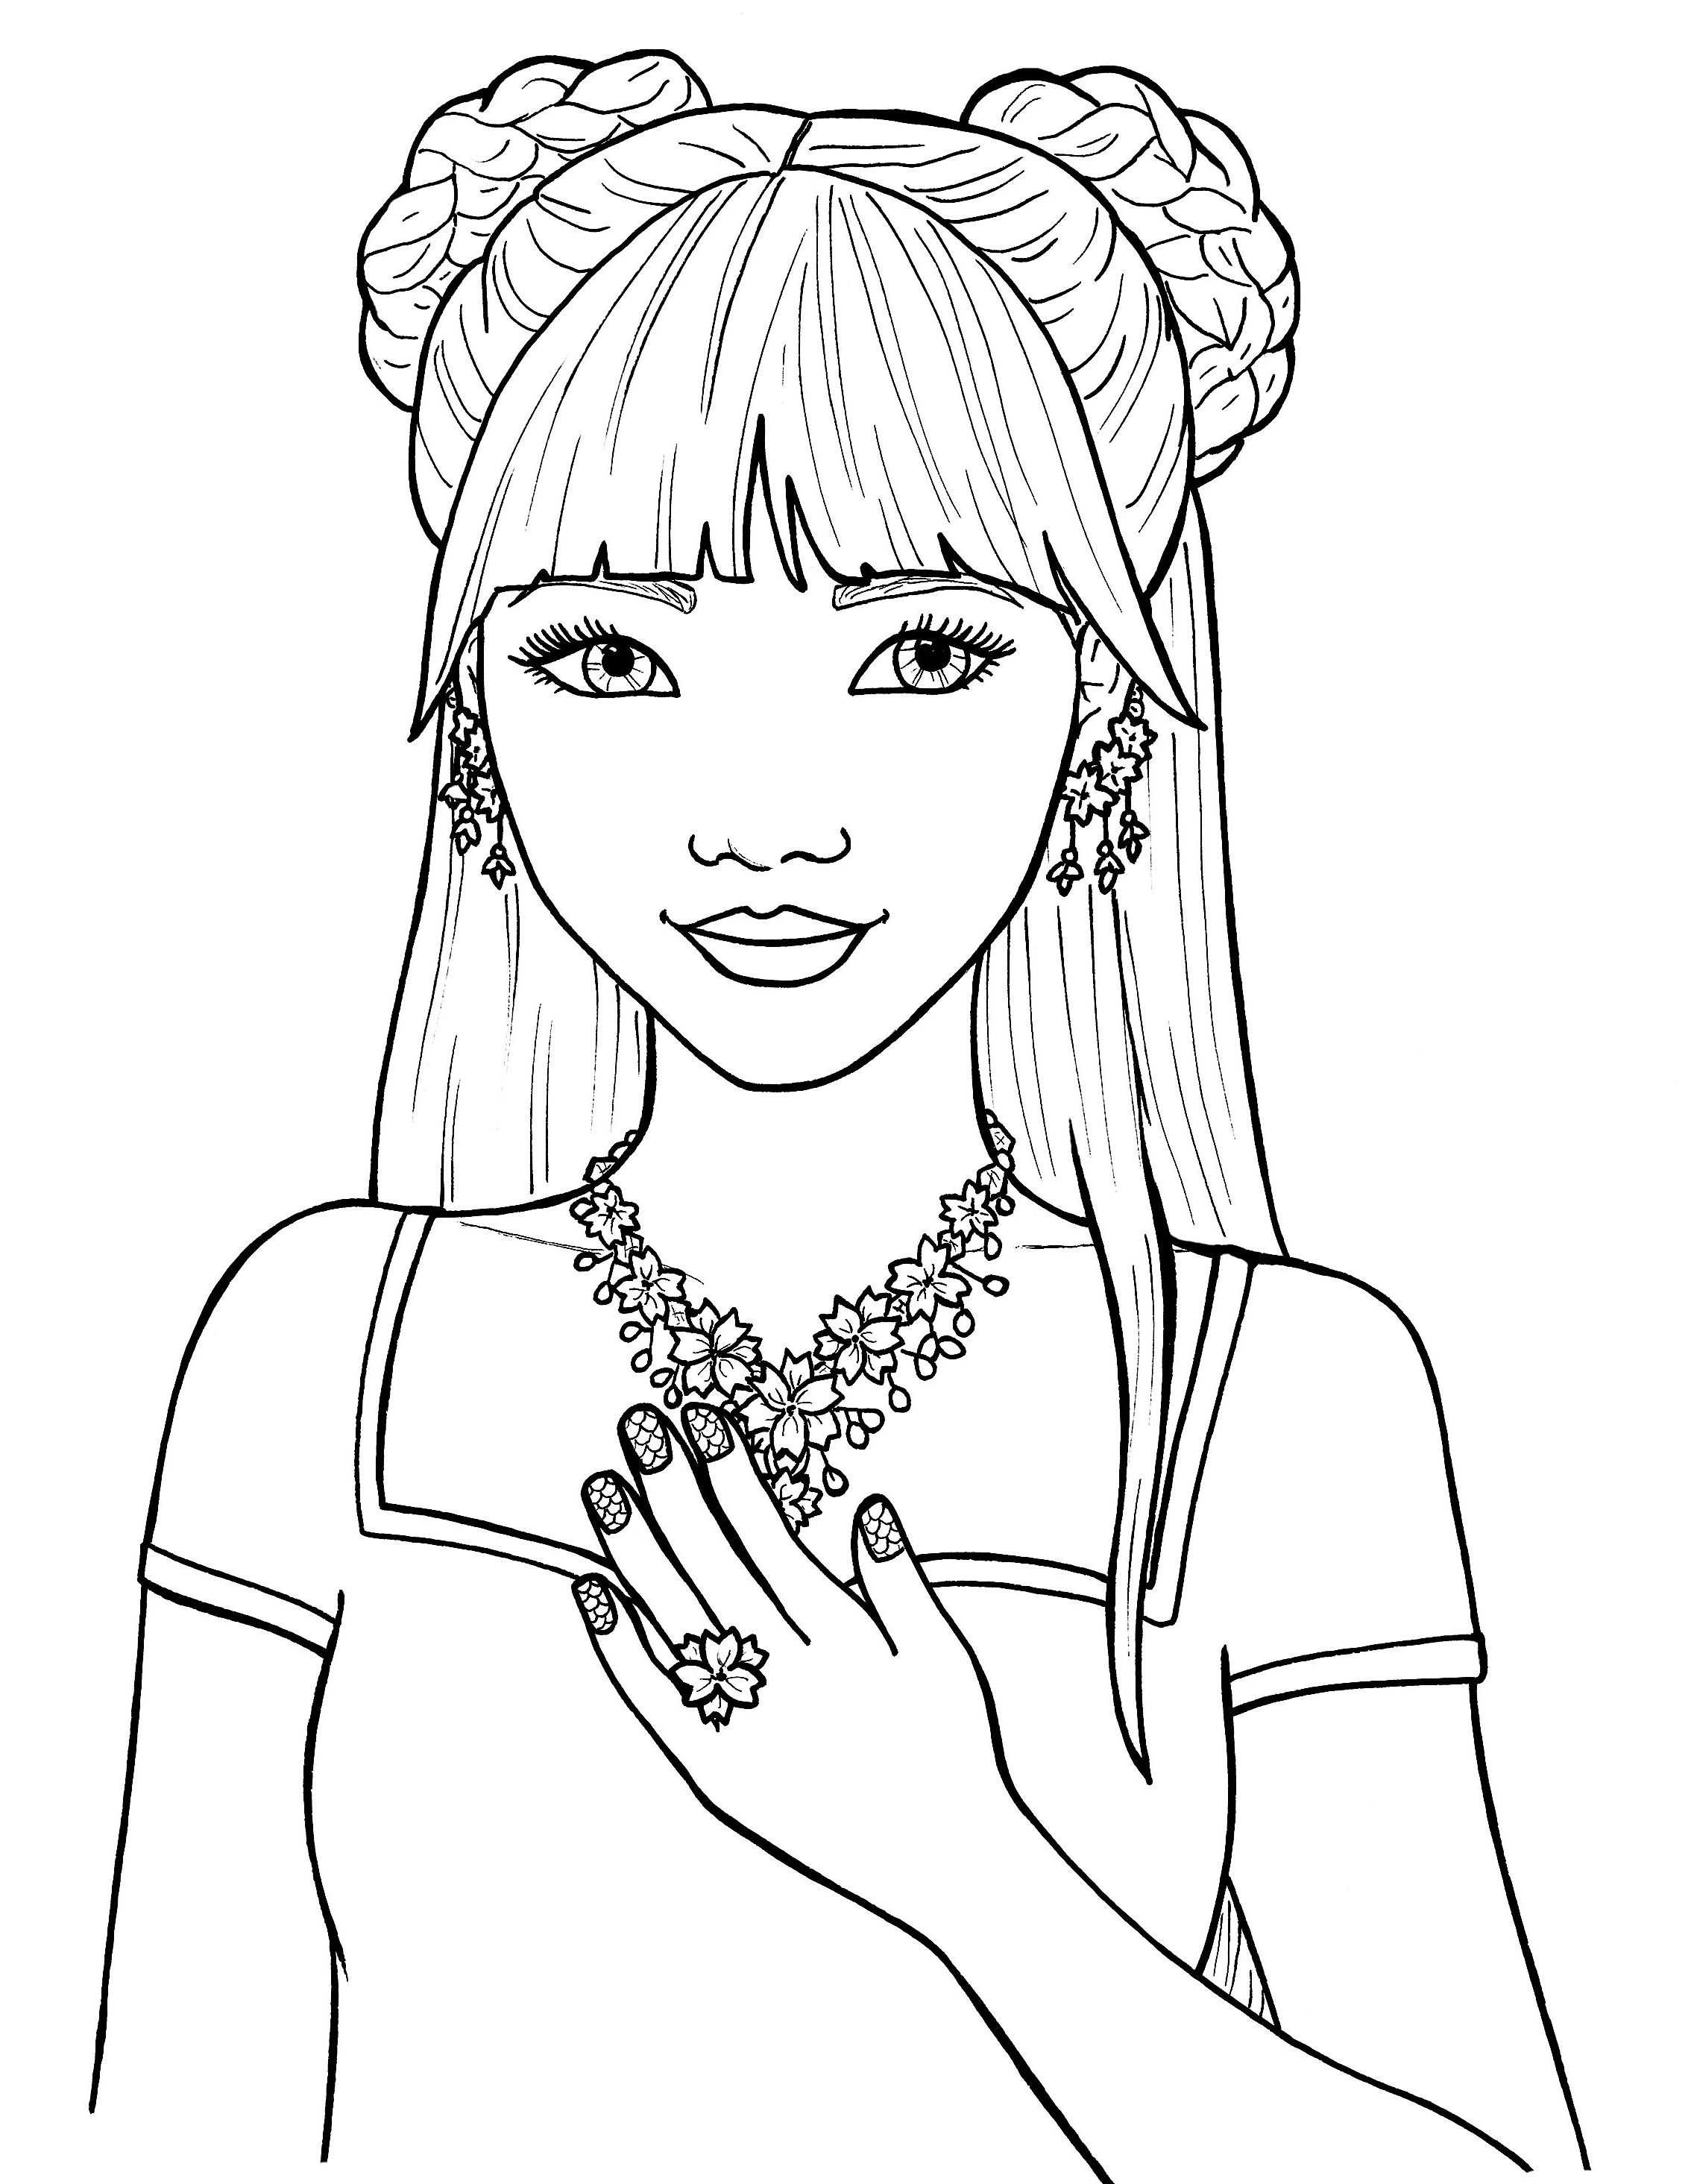 Pretty Girls Coloring Pages Free | Coloring pages for girls ...